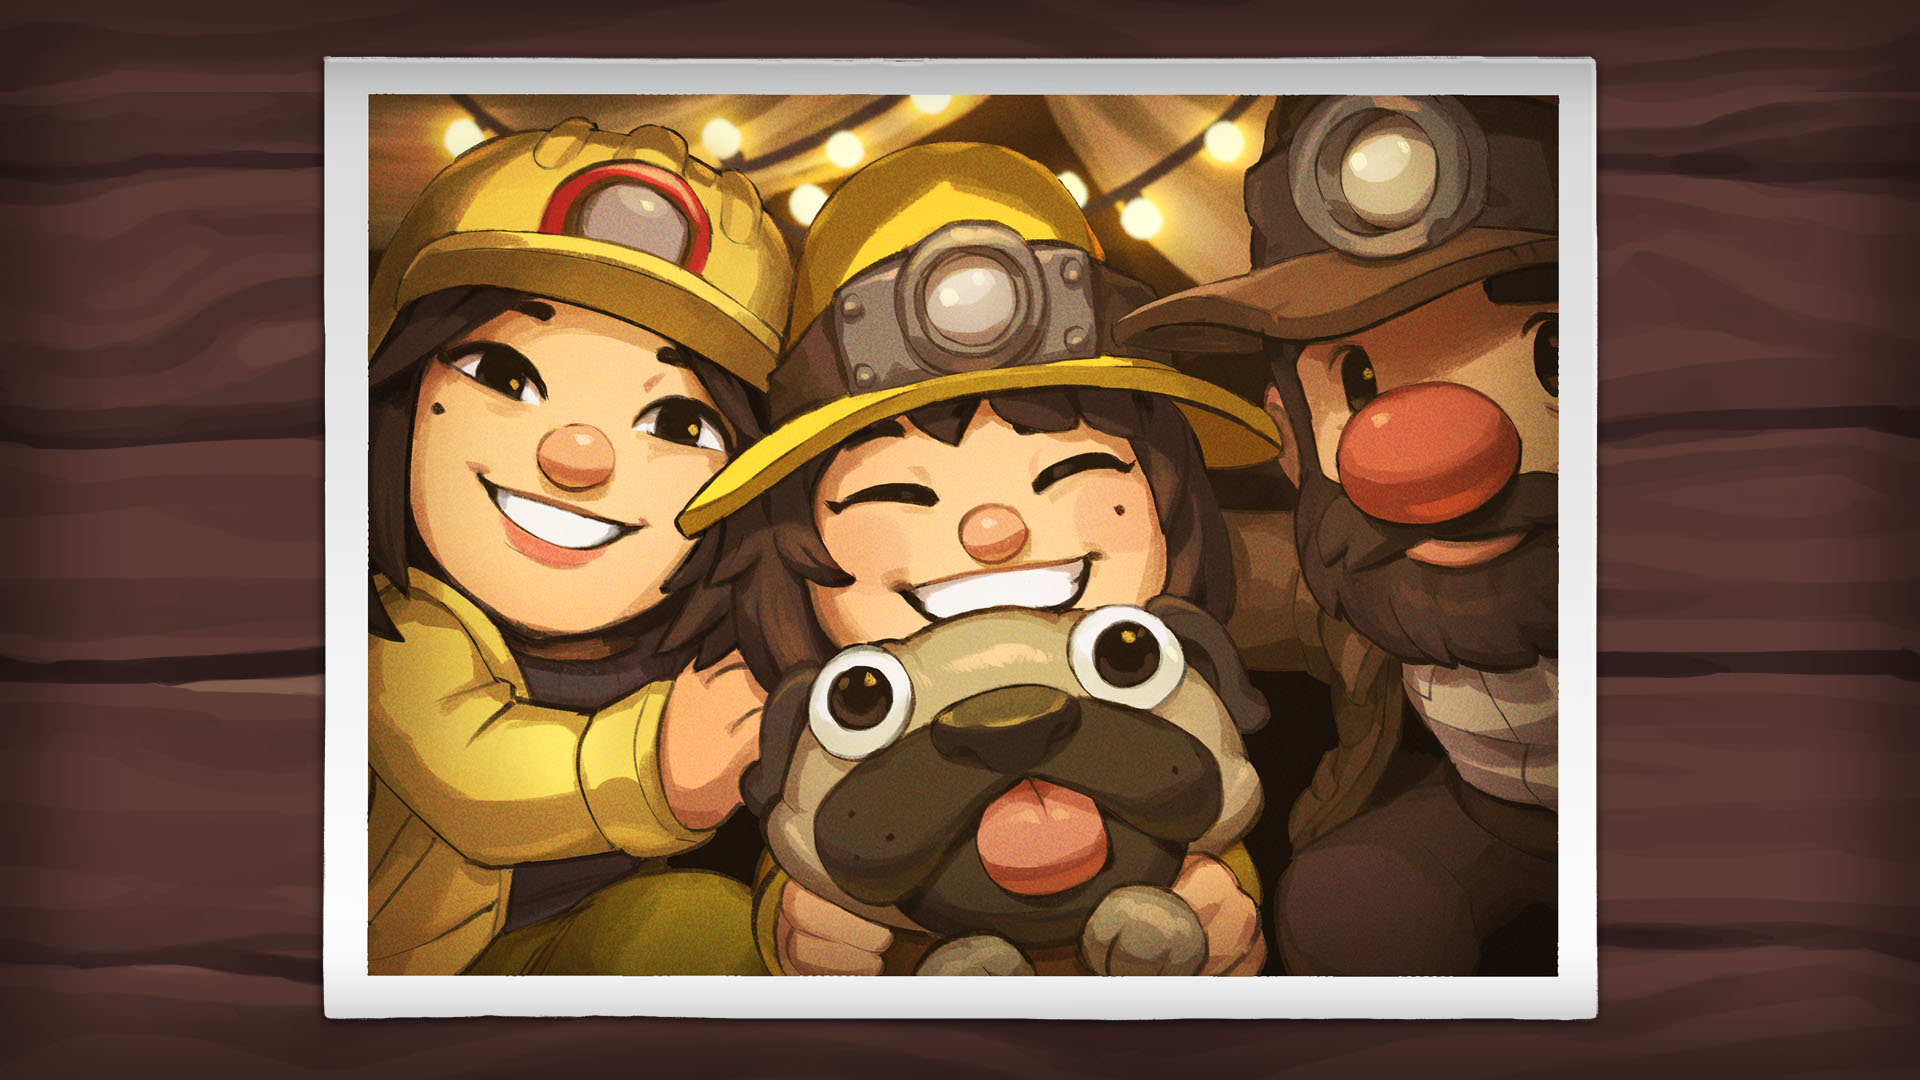 A polaroid of the Spelunky family from Spelunky 2